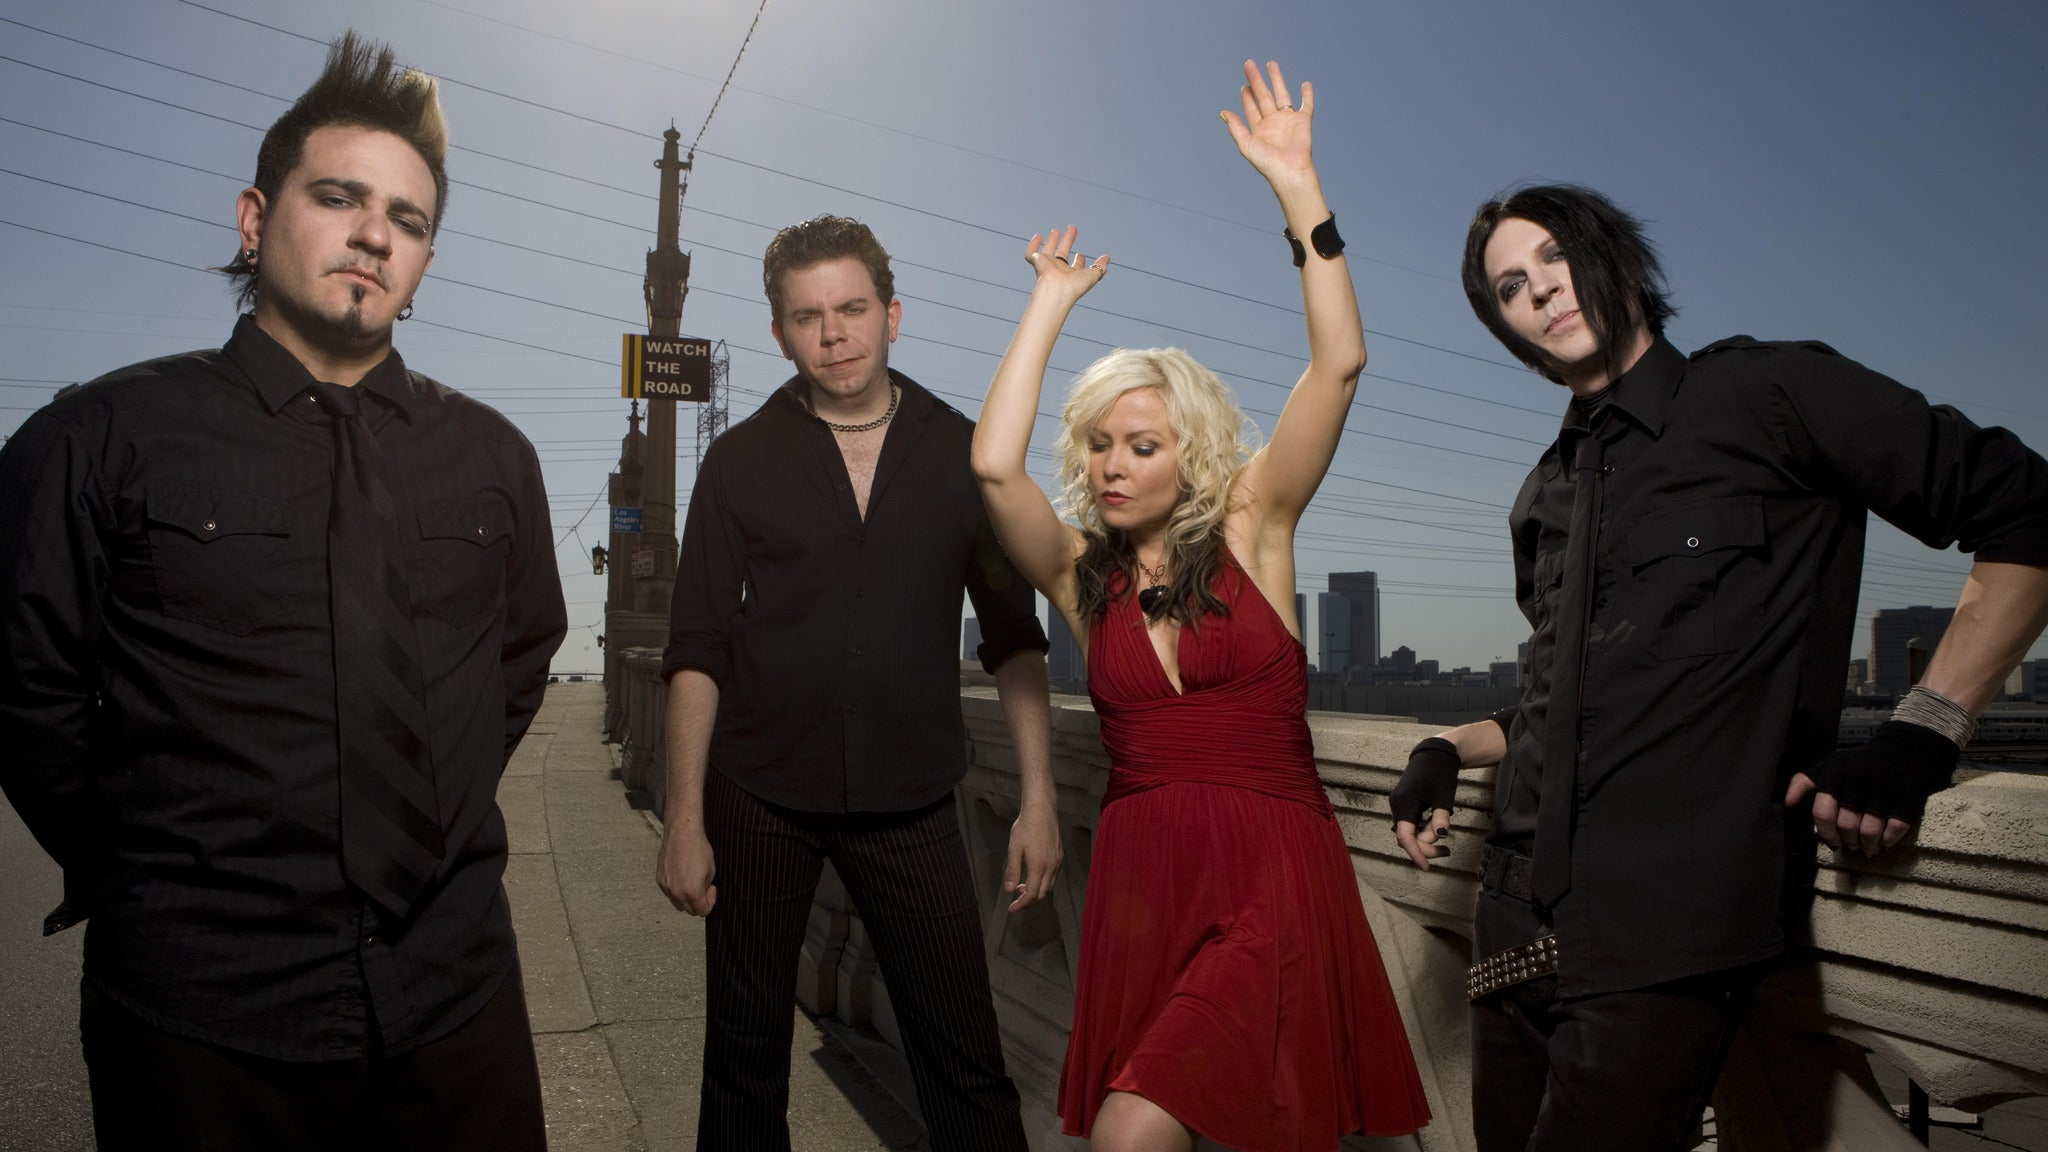 Berlin - featuring Terri Nunn at The Coach House